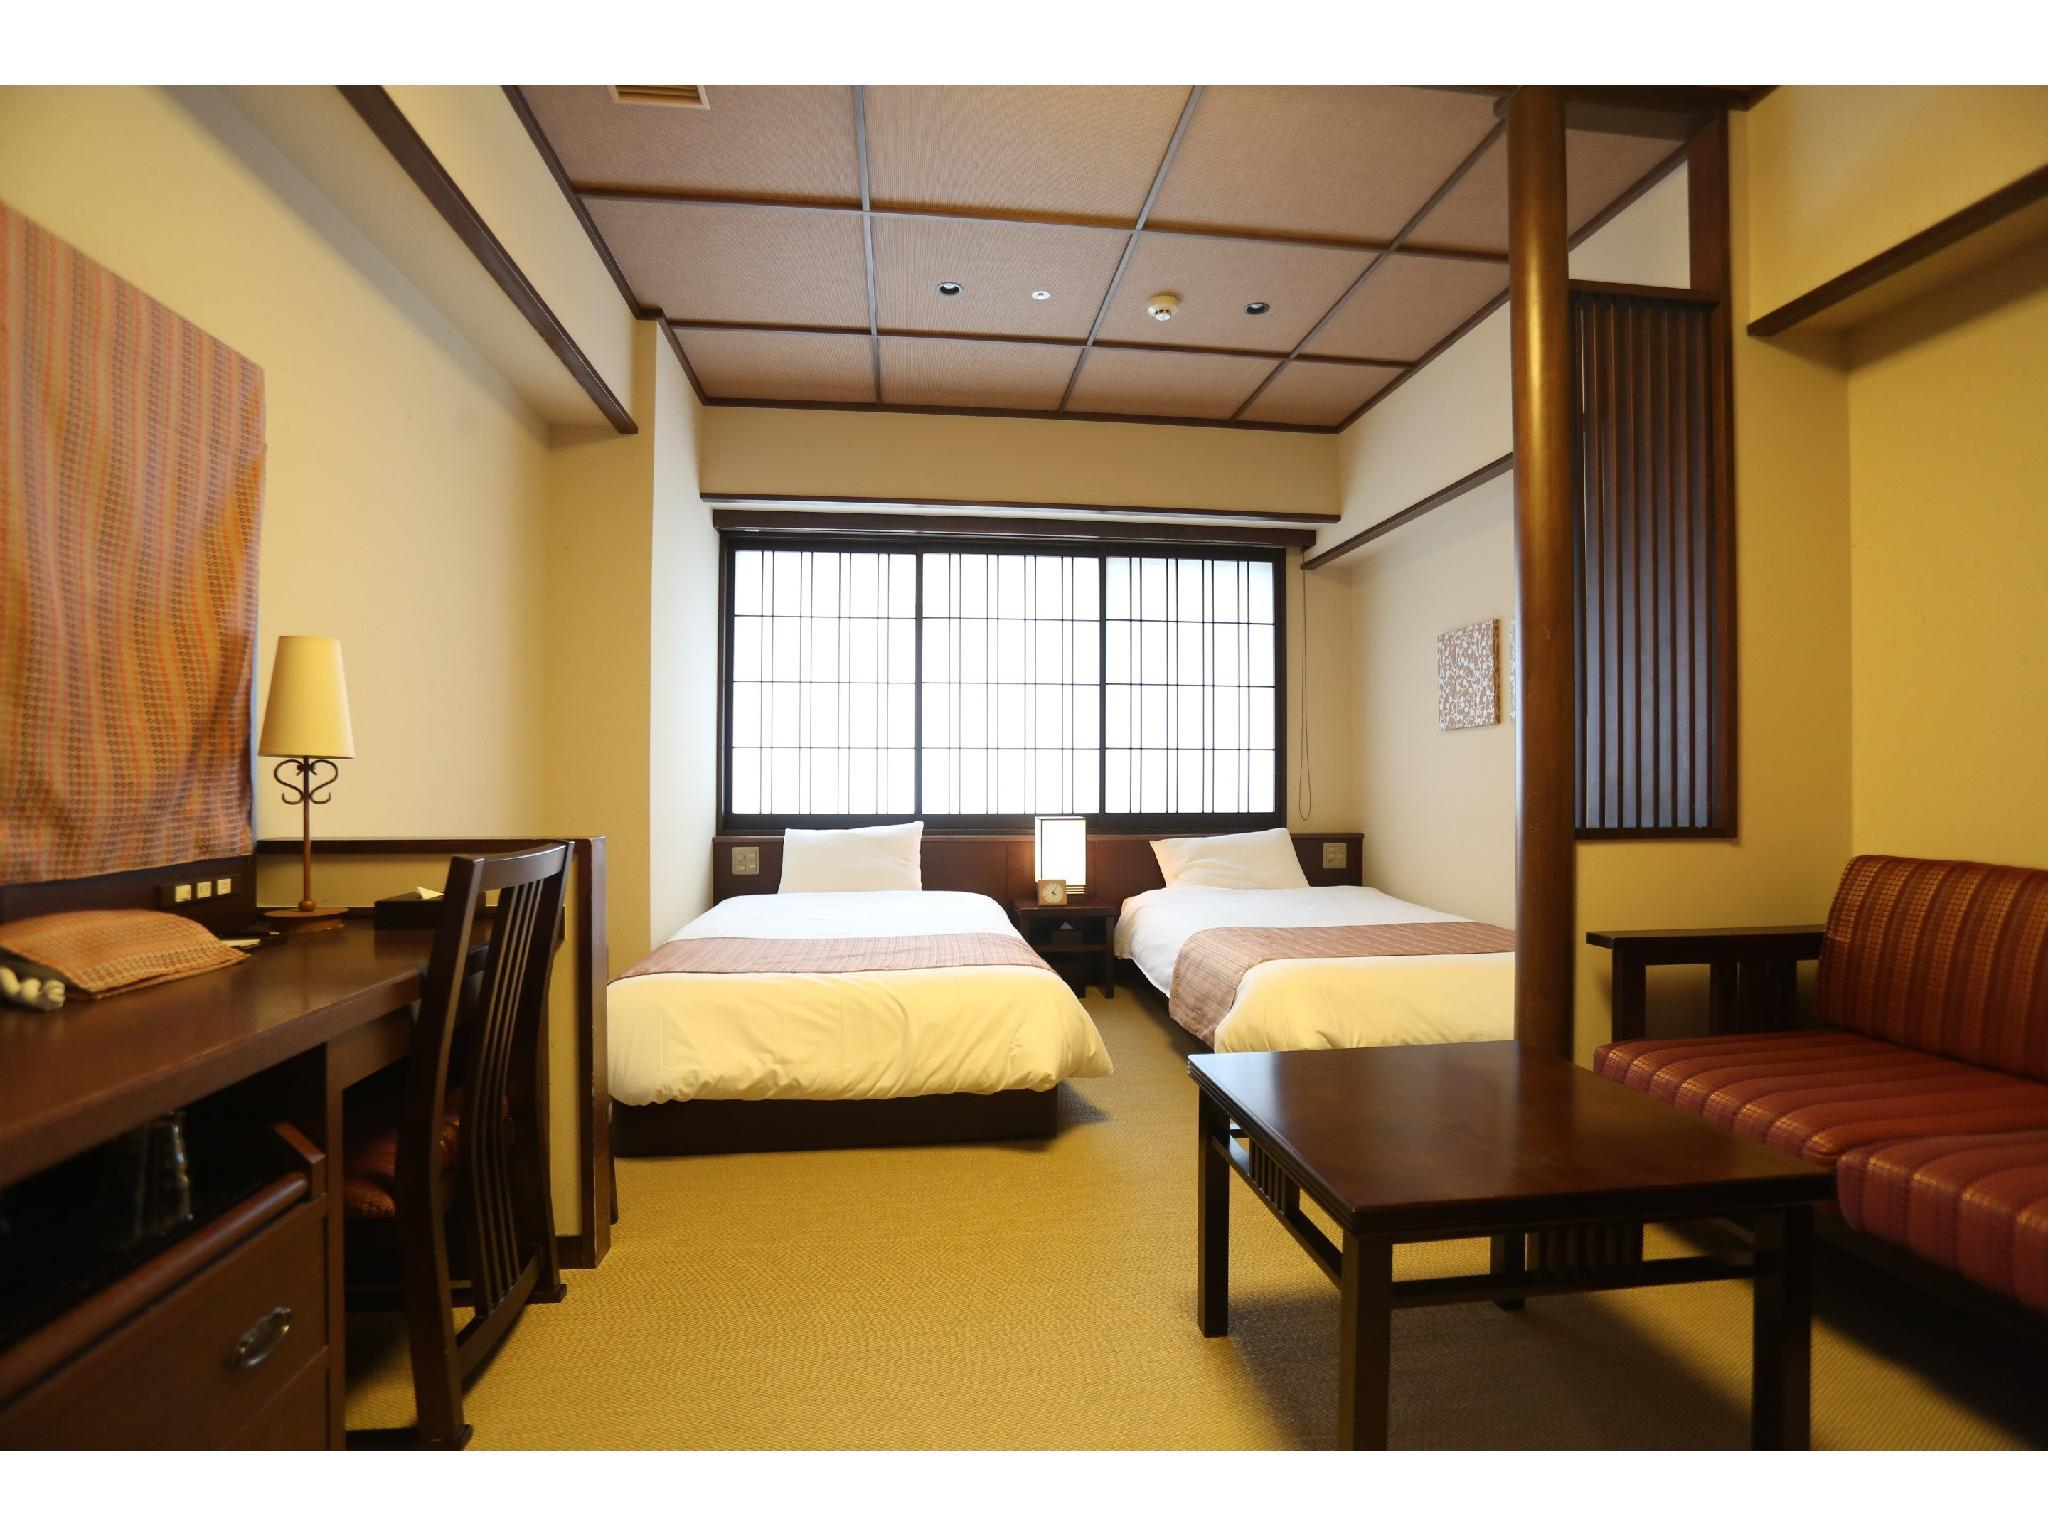 京町屋ツイン 禁煙 |23.1平米 (Twin Room (Bookings for children 6 years of age and above not requiring bedding  cannot be made for the Twin Room))